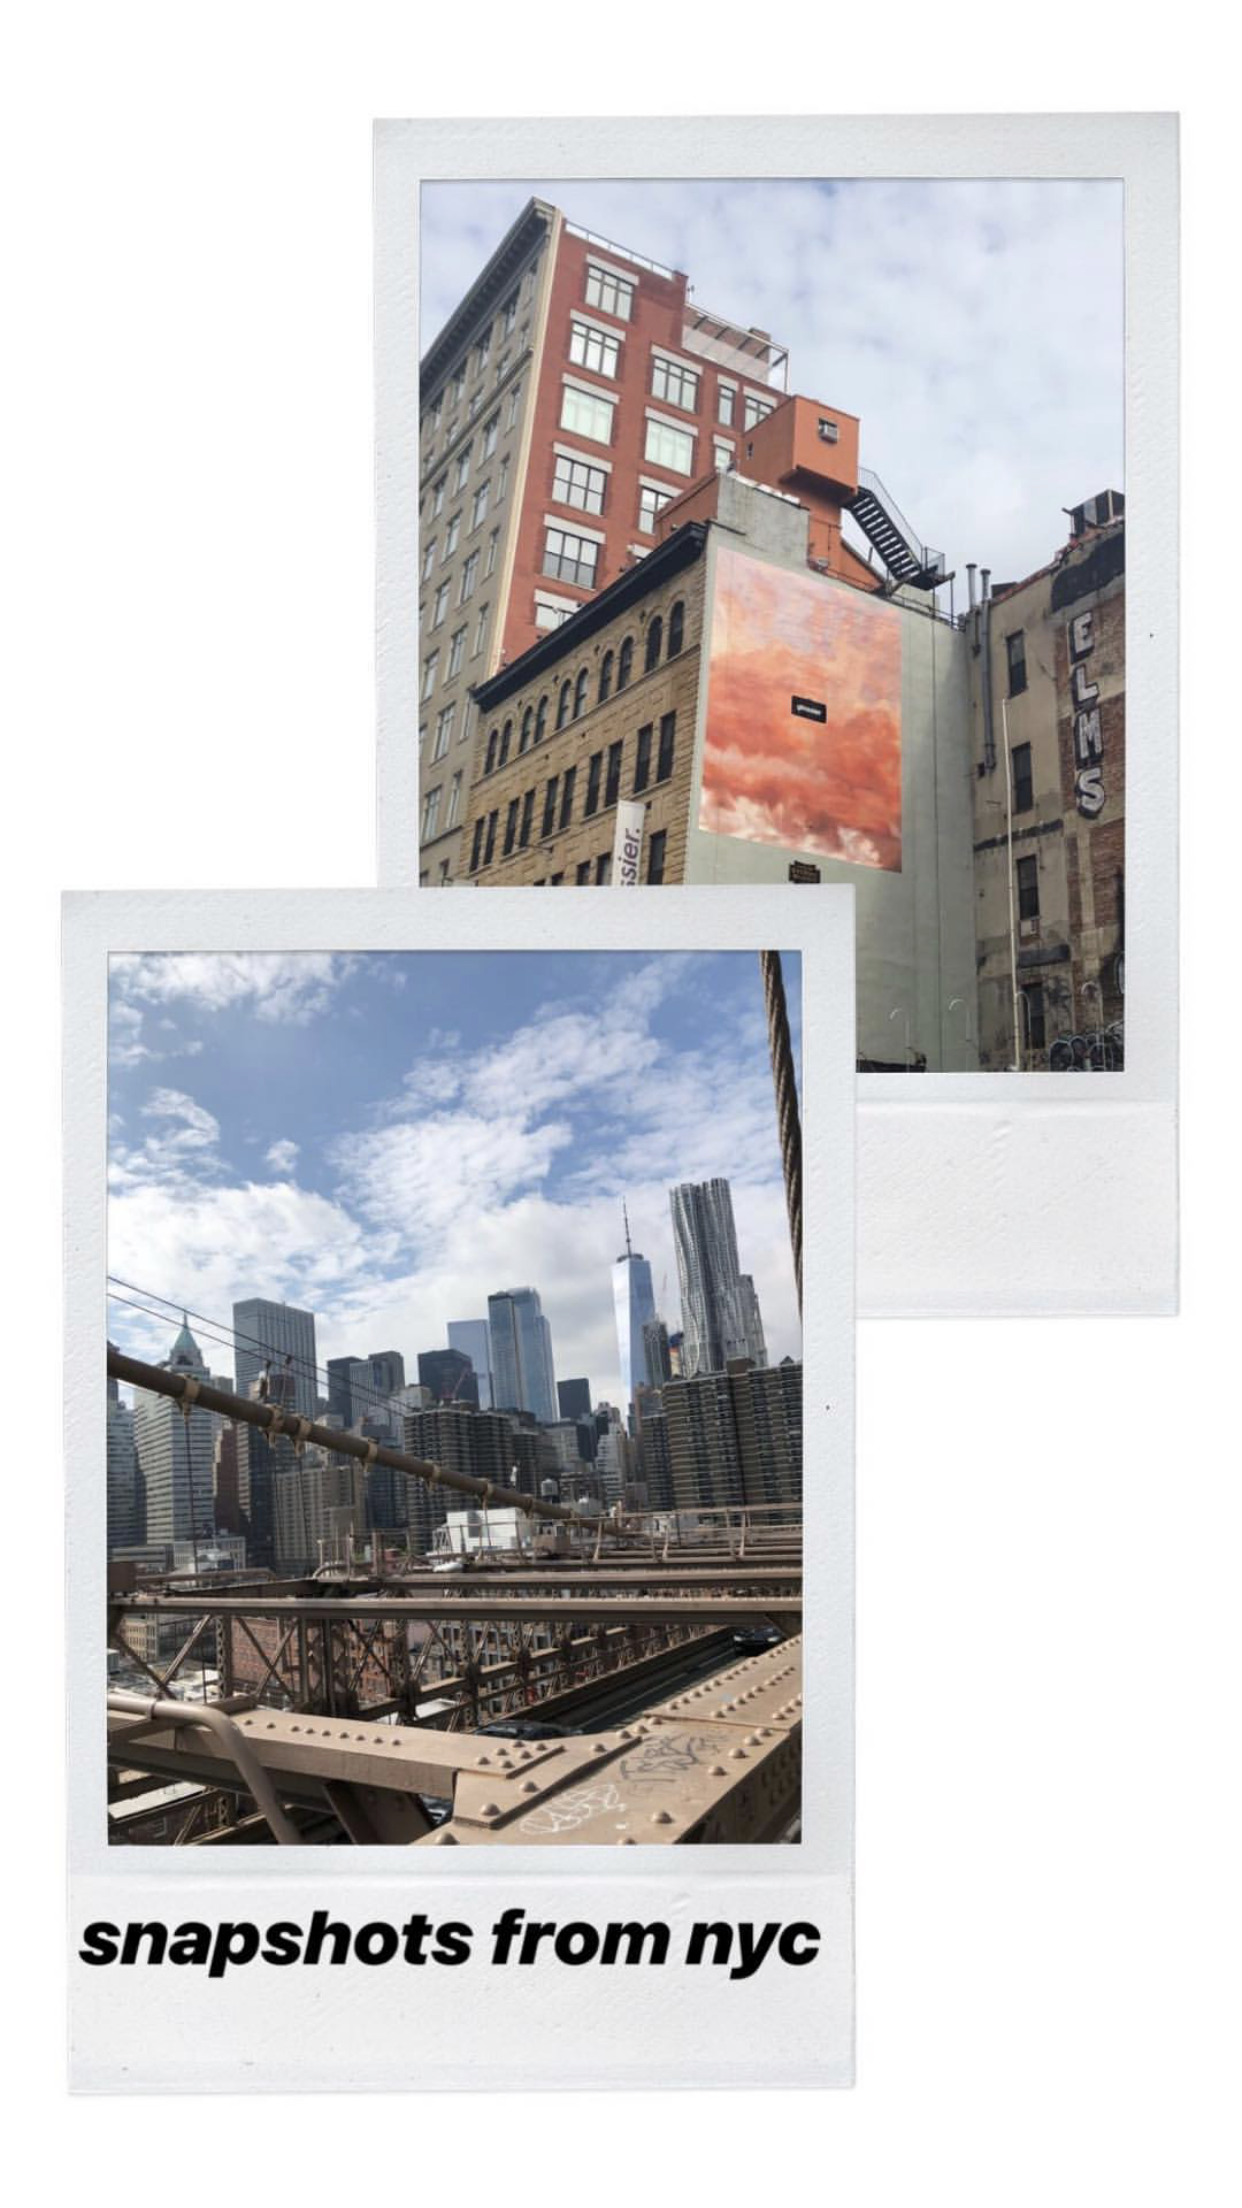 polaroid pictures of NYC's brooklyn bridge and Soho